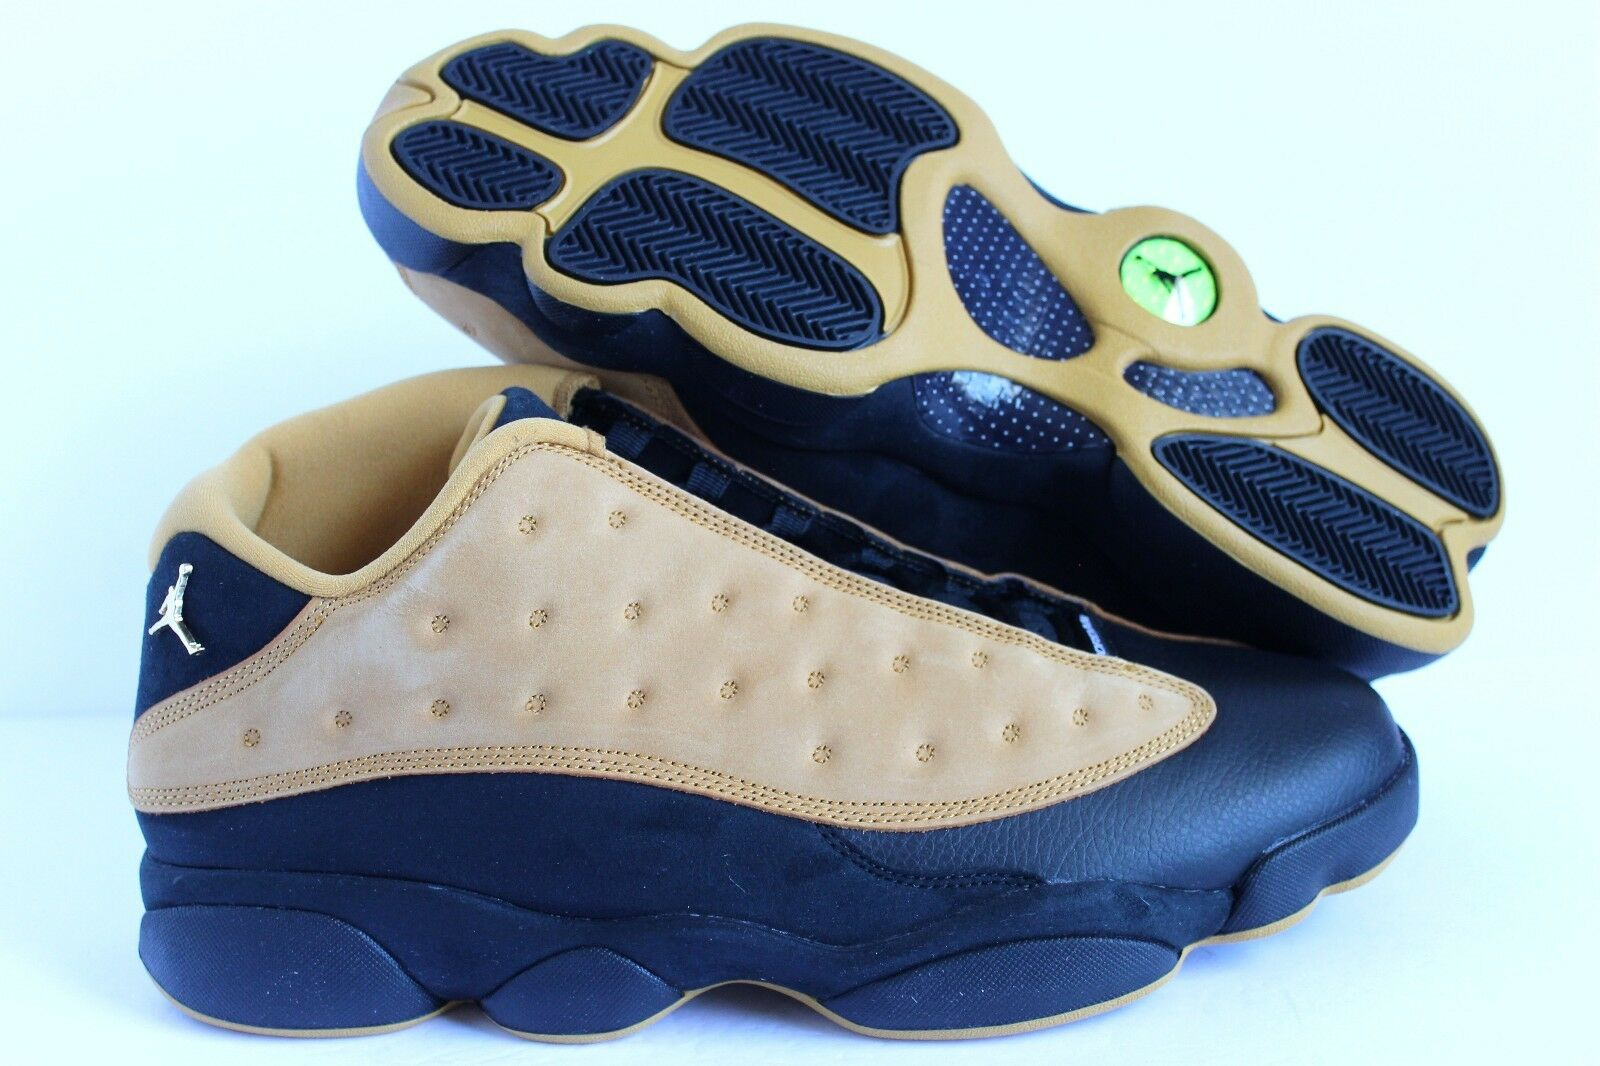 NIKE AIR JORDAN 13 RETRO LOW BLACK-CHUTNEY SZ 11 [310810-022]